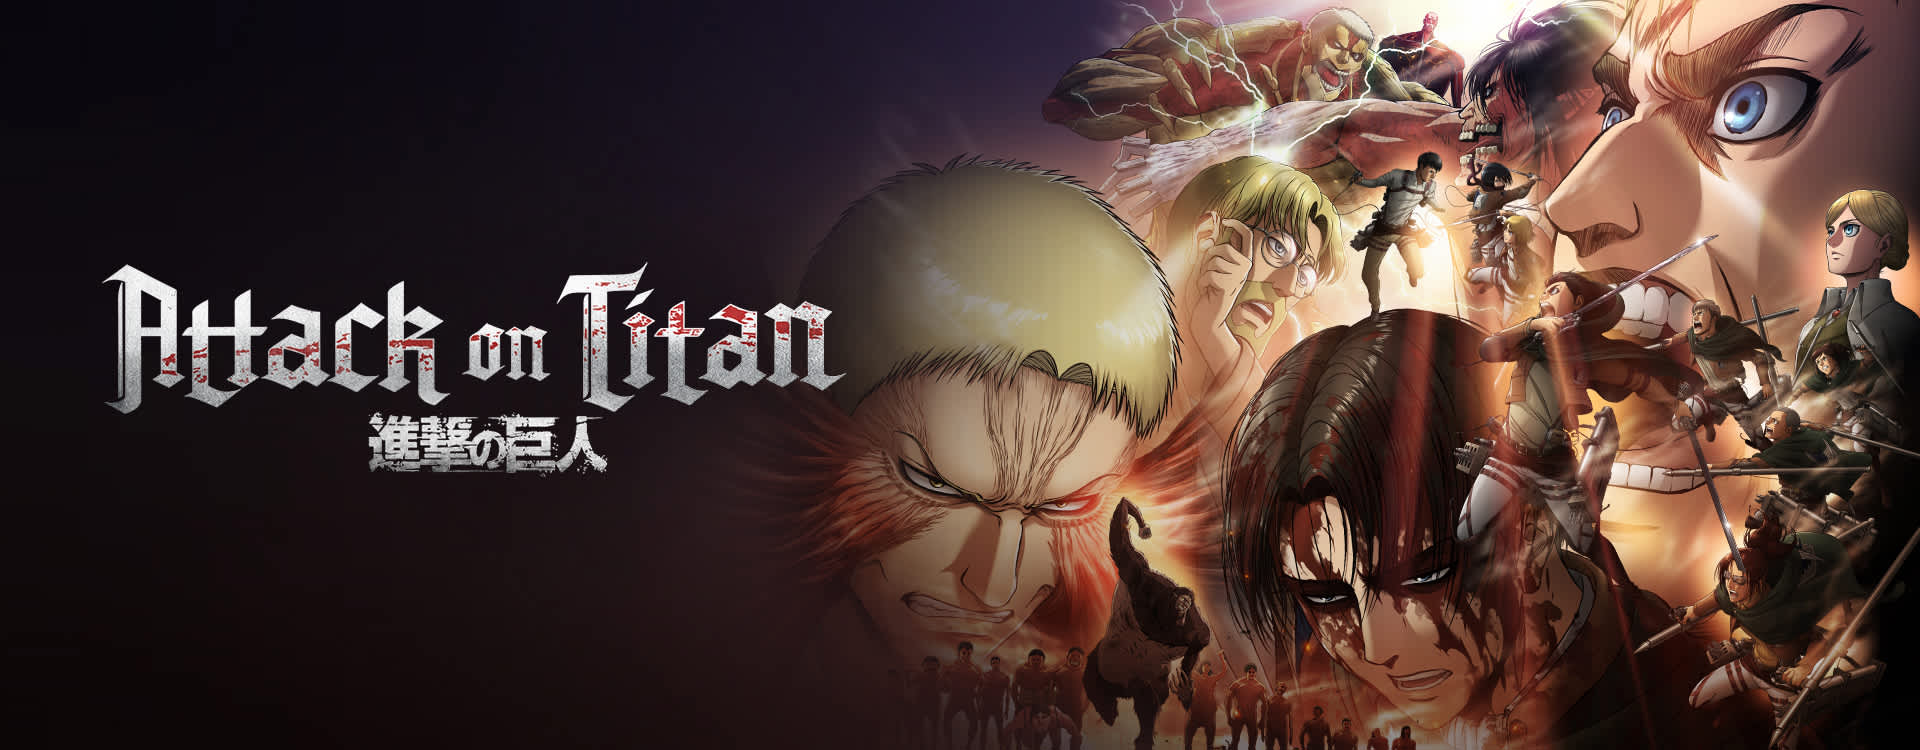 Watch Attack On Titan Episodes Sub & Dub | Action/Adventure